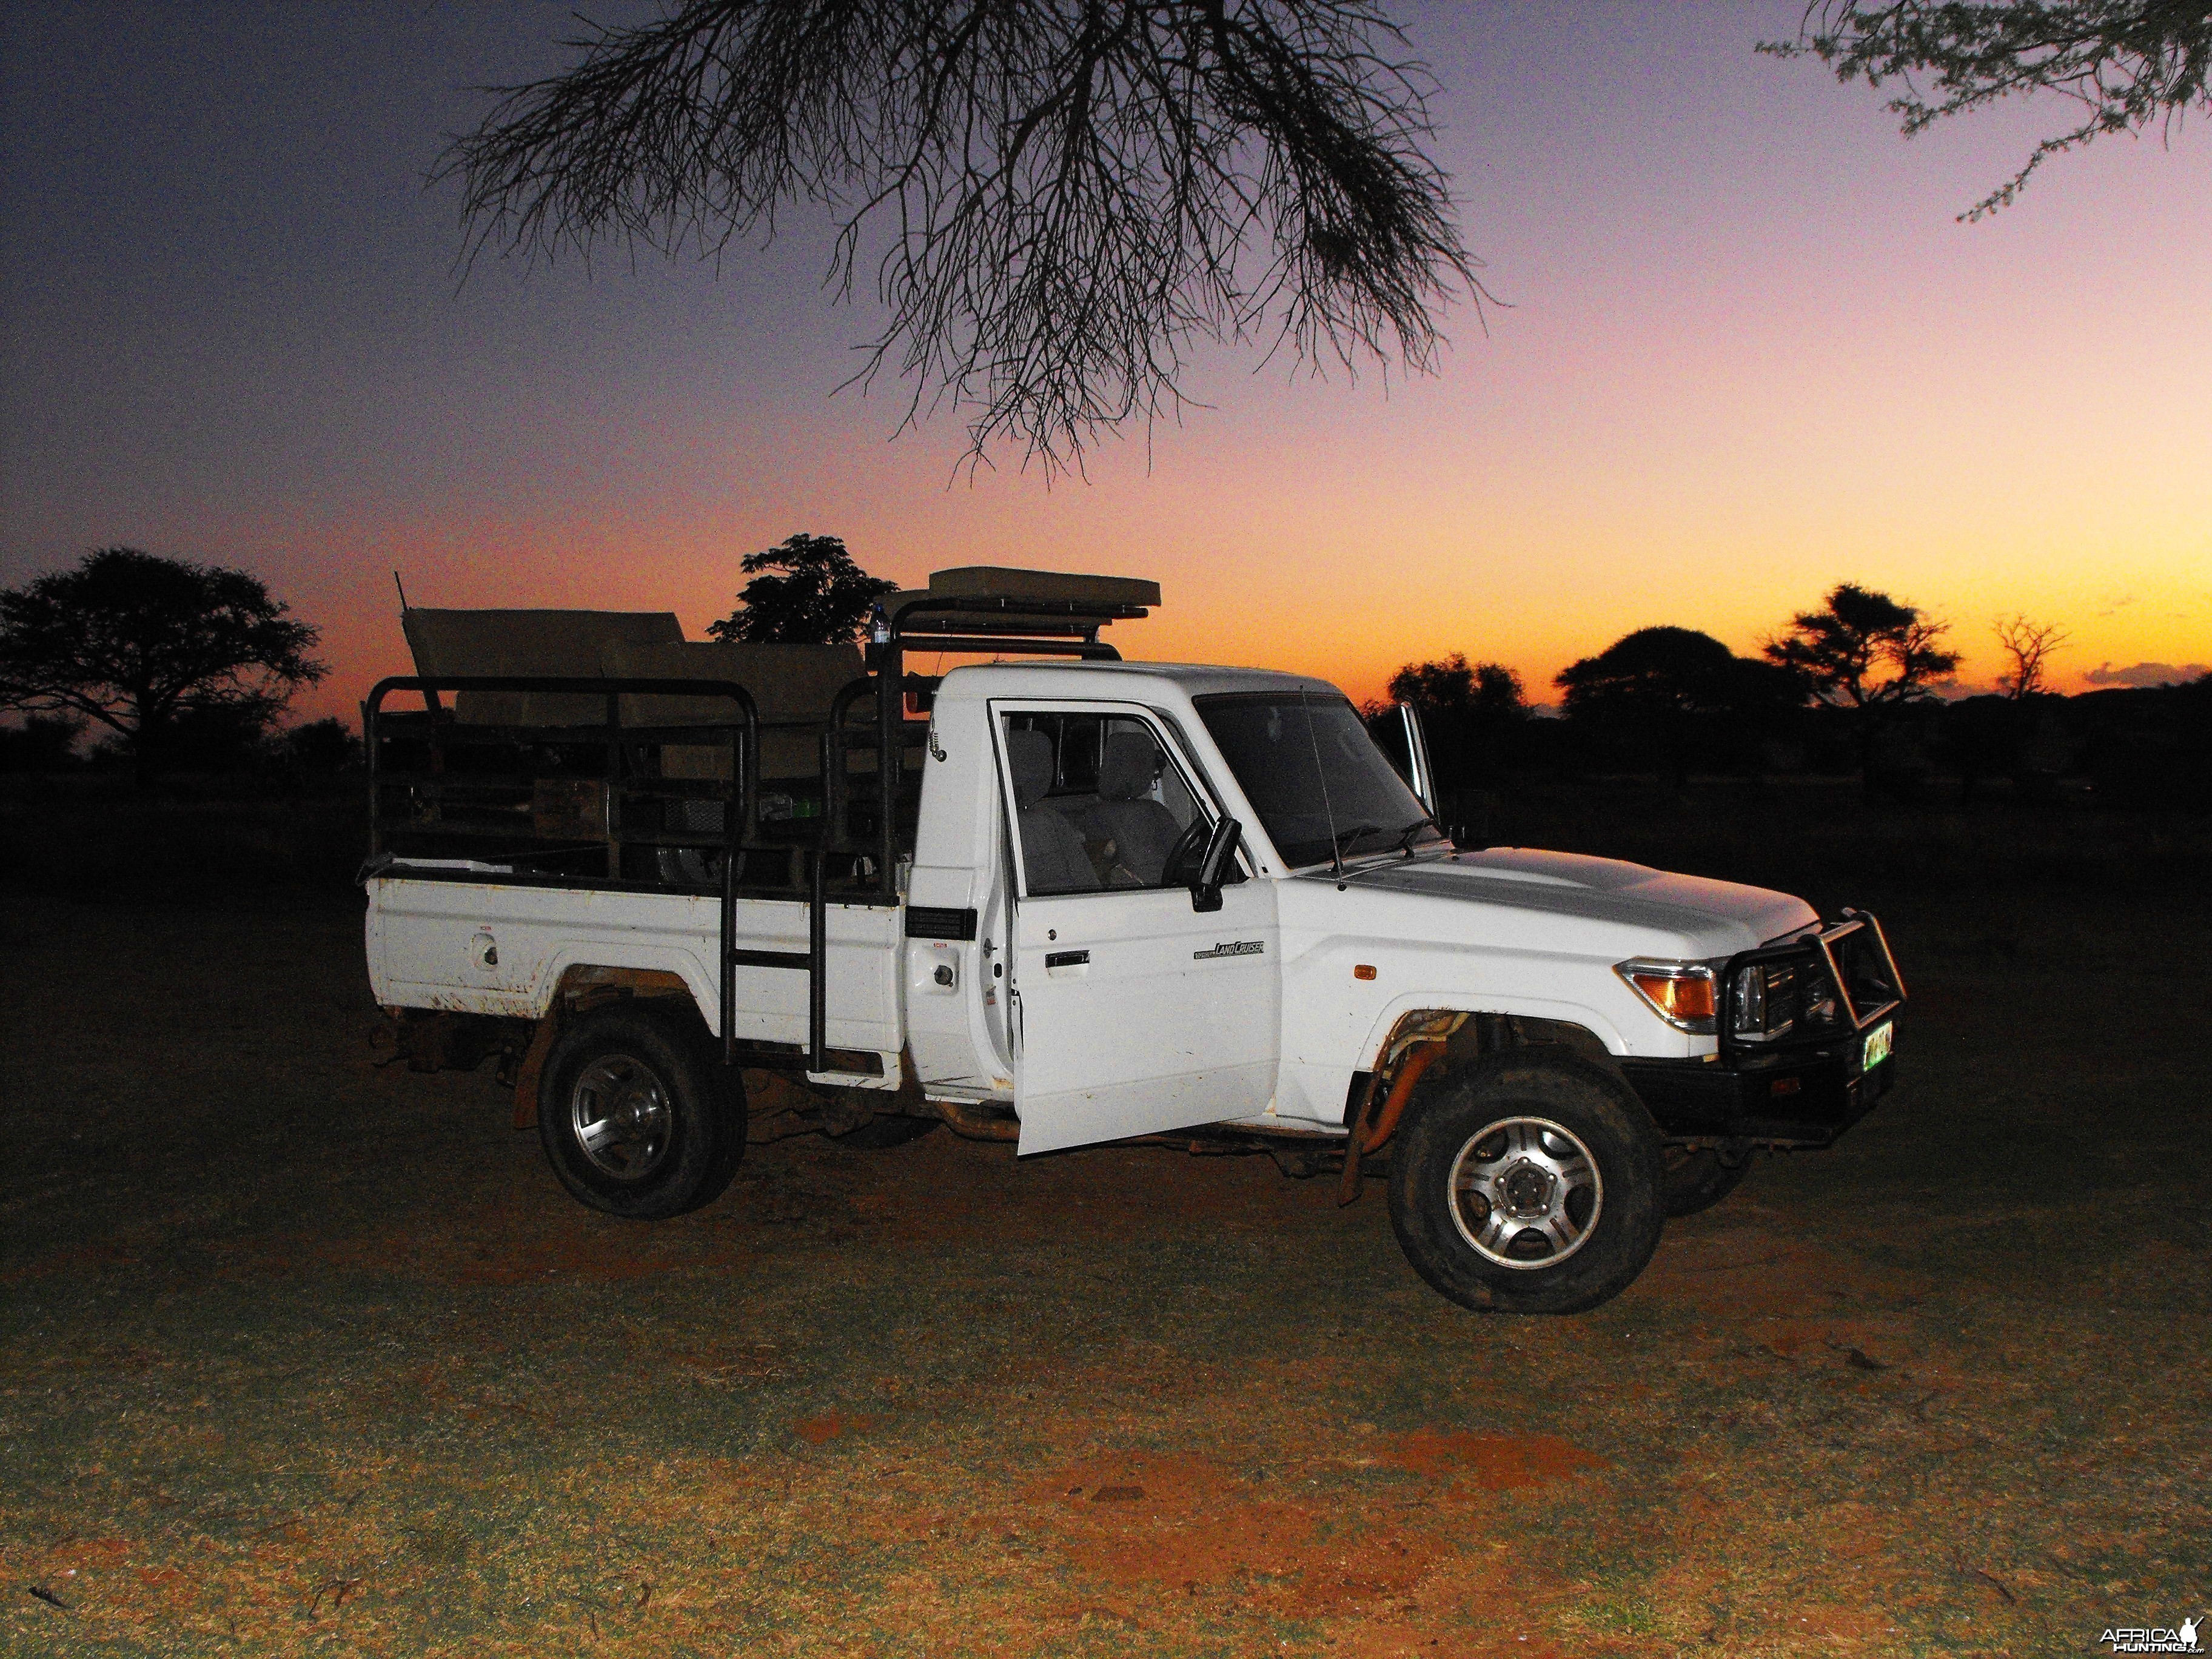 Our huntmobile at dusk